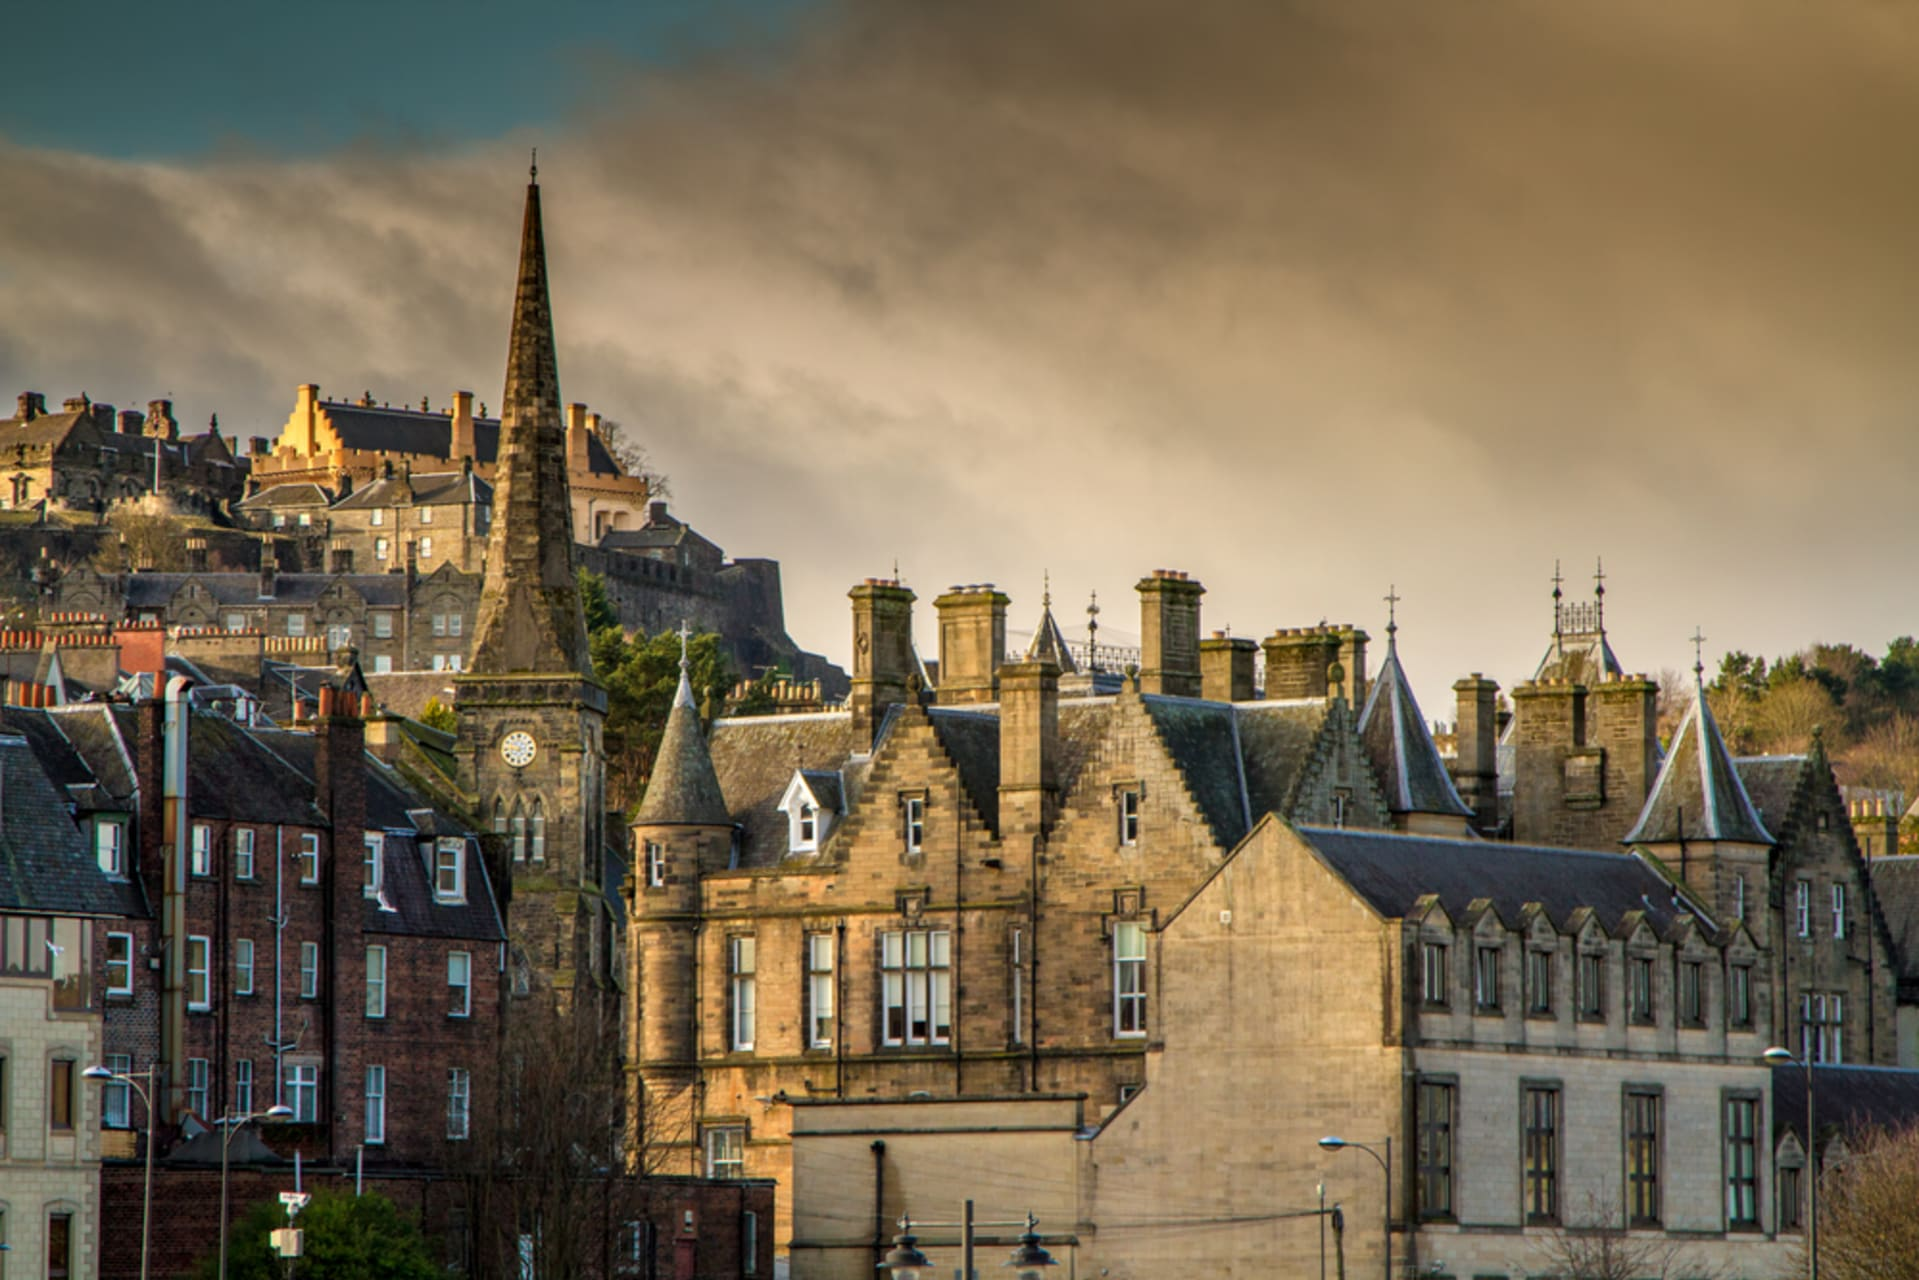 Stirling - Stirling's Old Town and Castle views